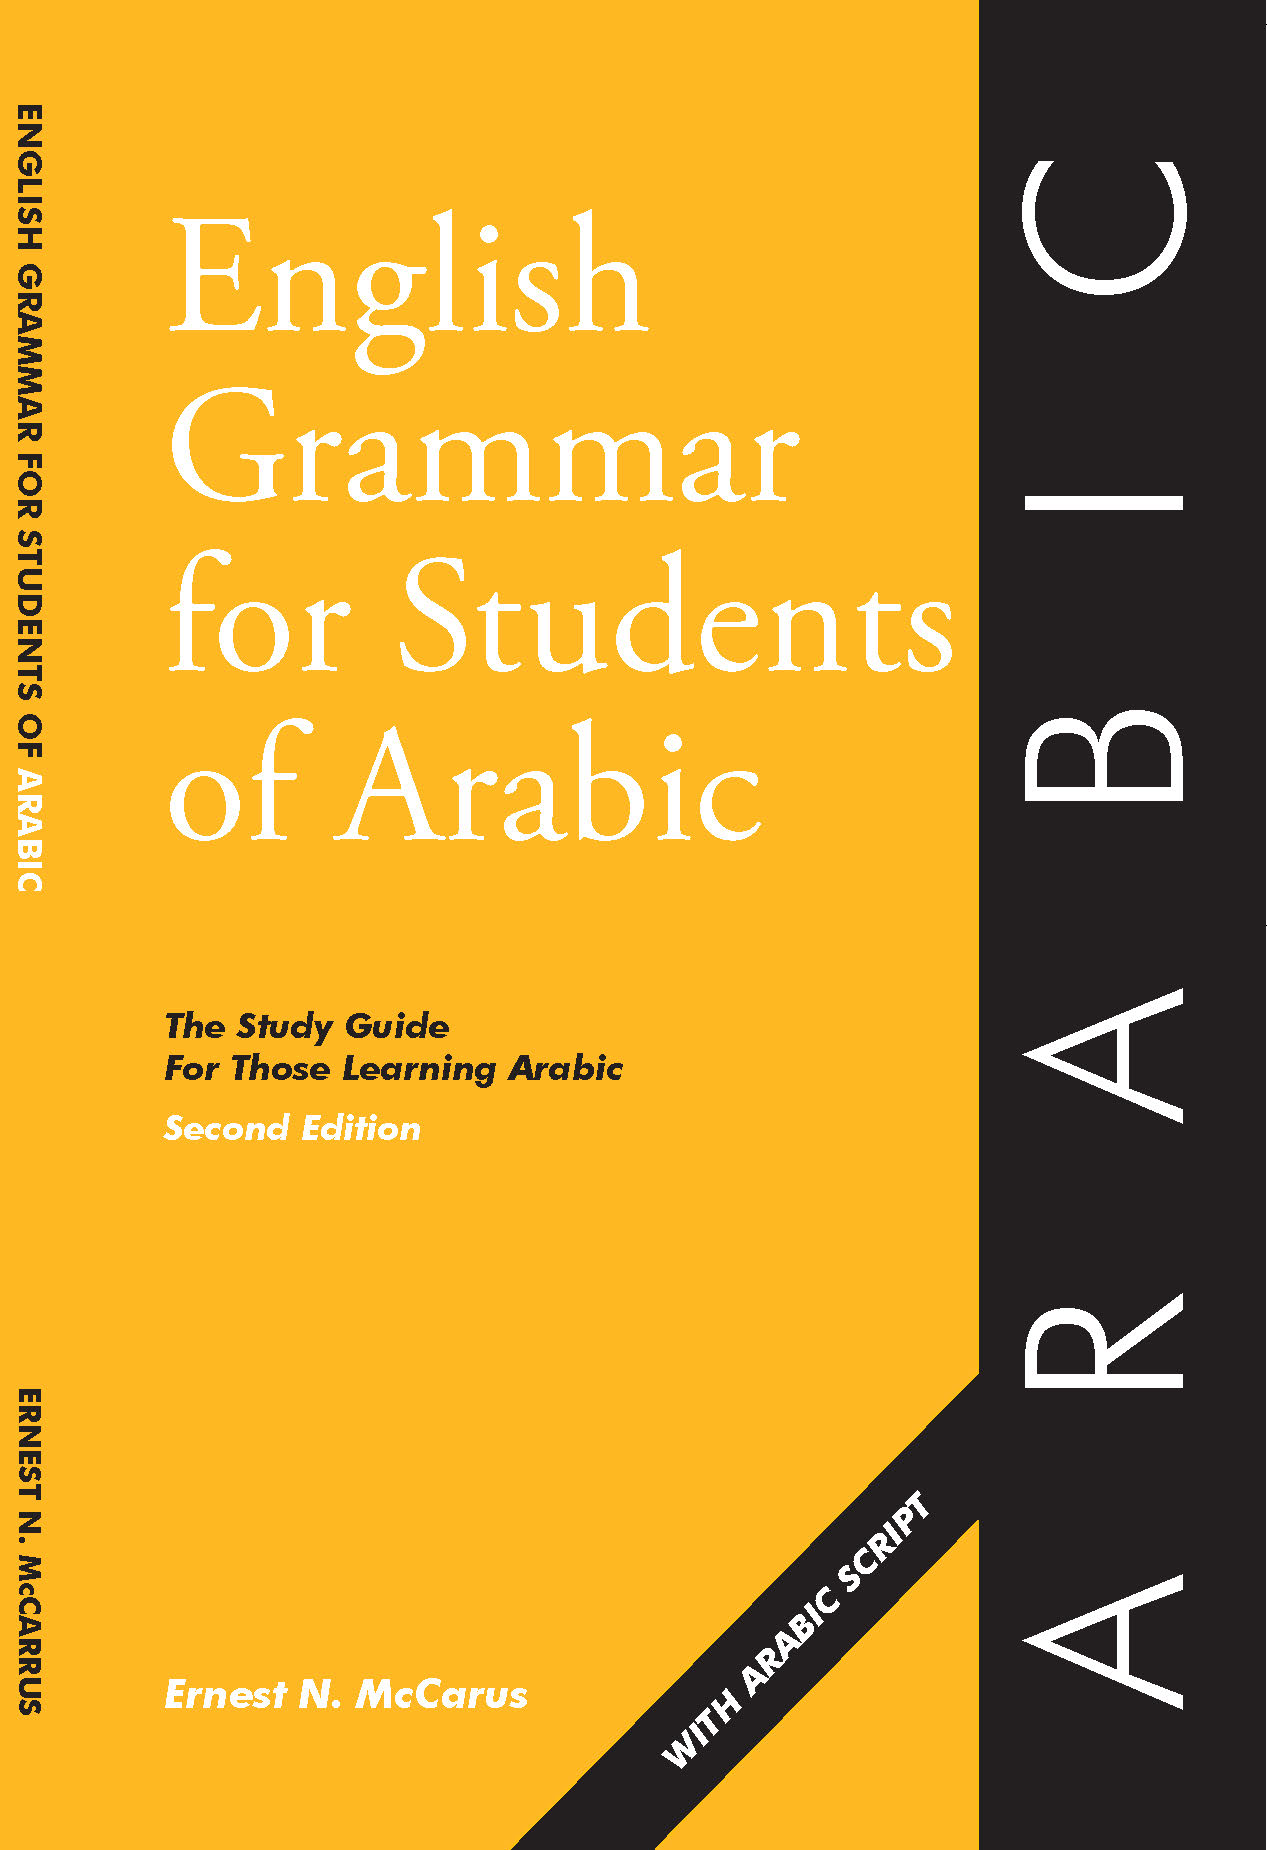 English Grammar for Students of Arabic, 2nd edition